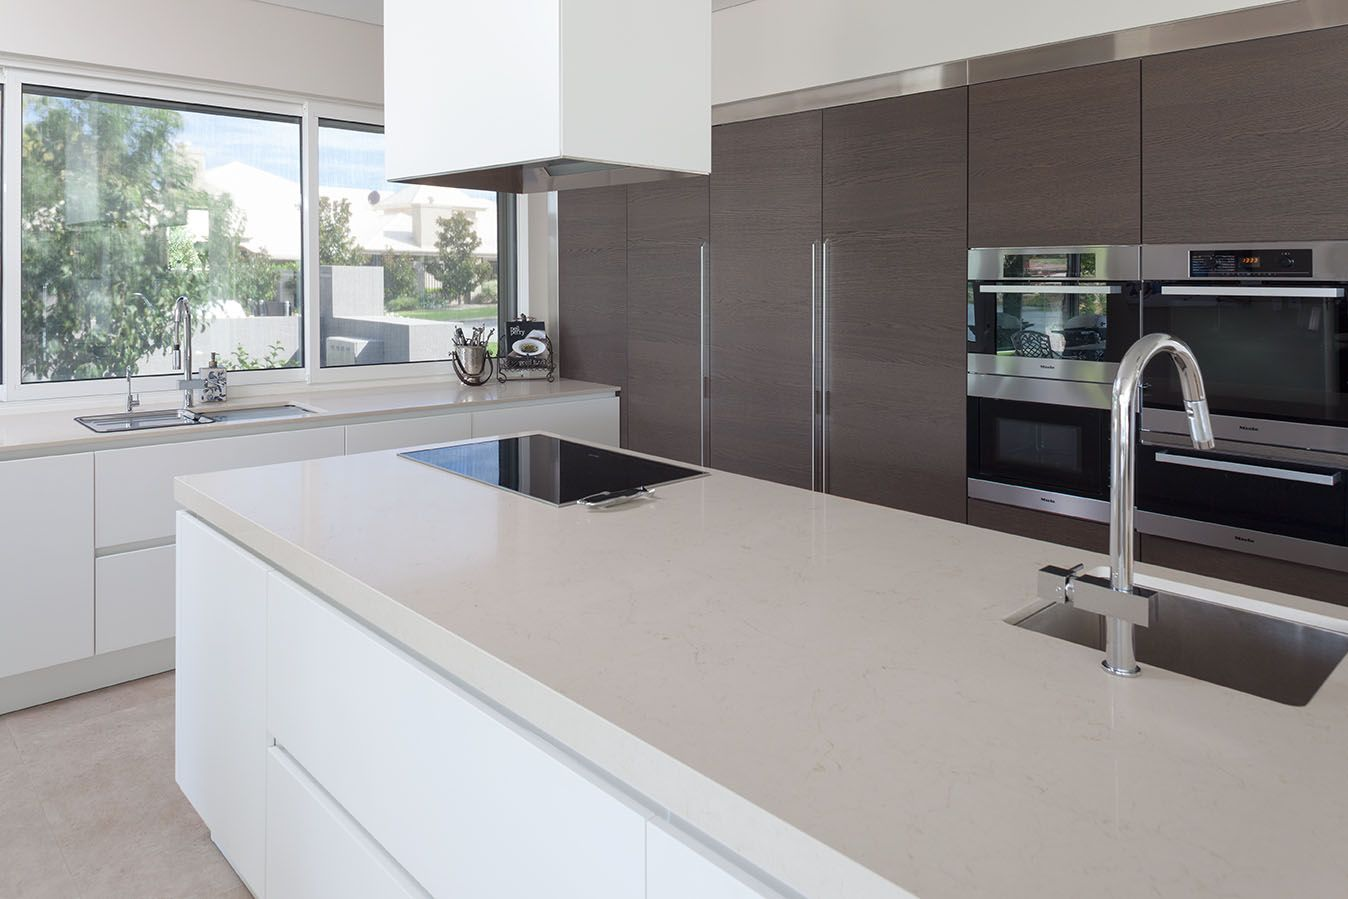 Brentwood Kitchen By Retreat Design   Cabinetry From Our Italian Suppliers  Arrital #kitchen #kitchendesign